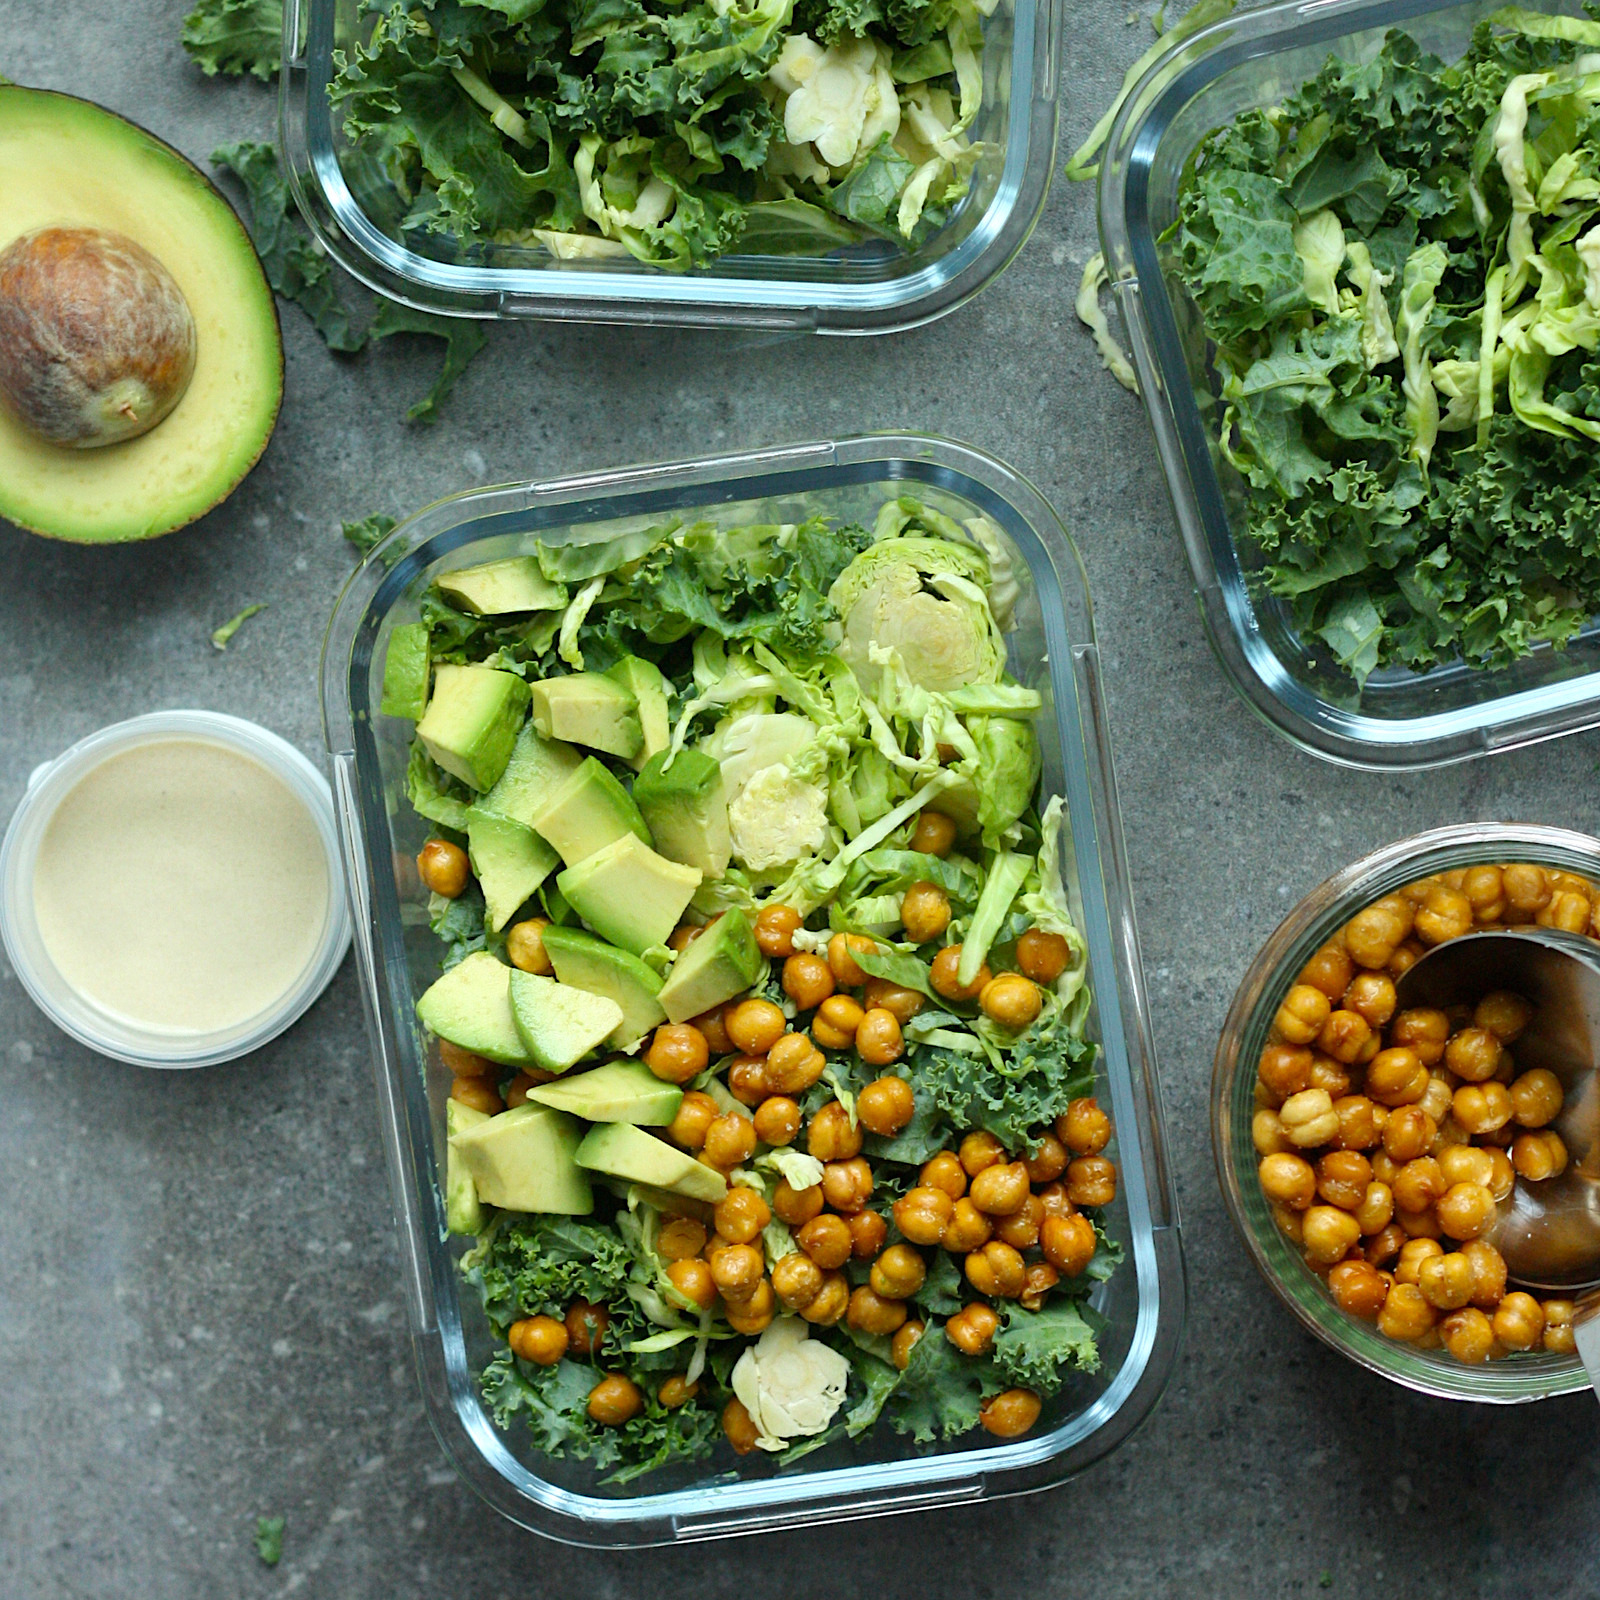 This healthy high-fiber salad comes together in just 10 minutes. Serve it right away or pack it in individual servings for four super-satisfying high-fiber lunches for the week ahead. To cut down on prep time, we're using preshredded Brussels sprouts from the produce department and store-bought roasted chickpeas. Look for roasted chickpea snacks with the healthy snacks or nuts at your grocery store.